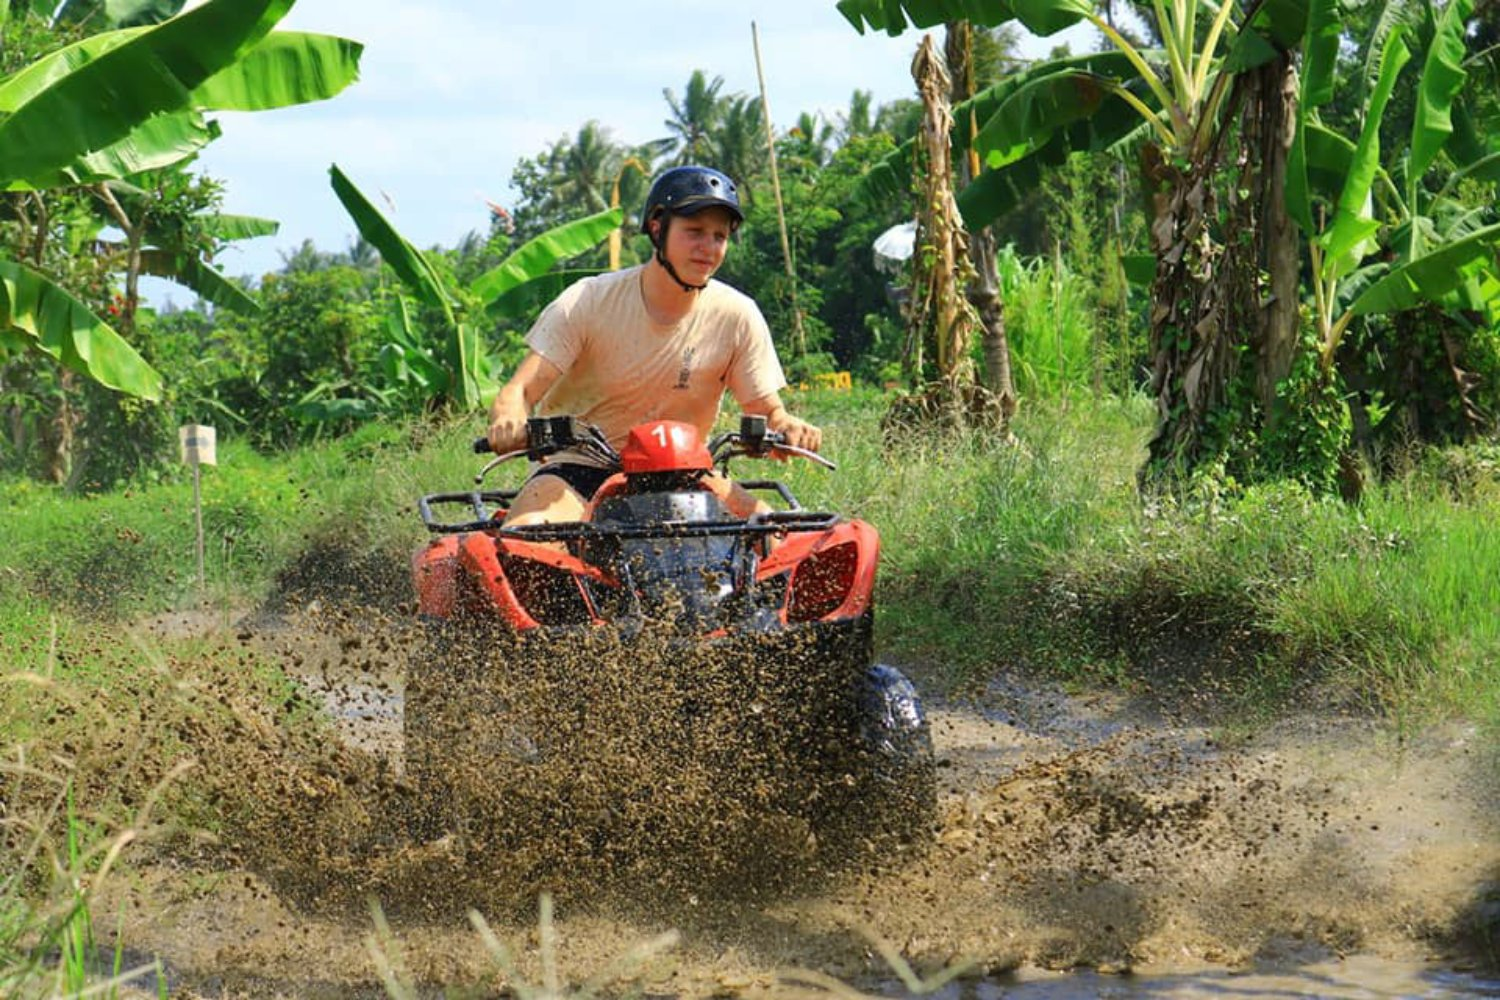 Atv Bali Rice Fields Quad Bike Adventure and Forest